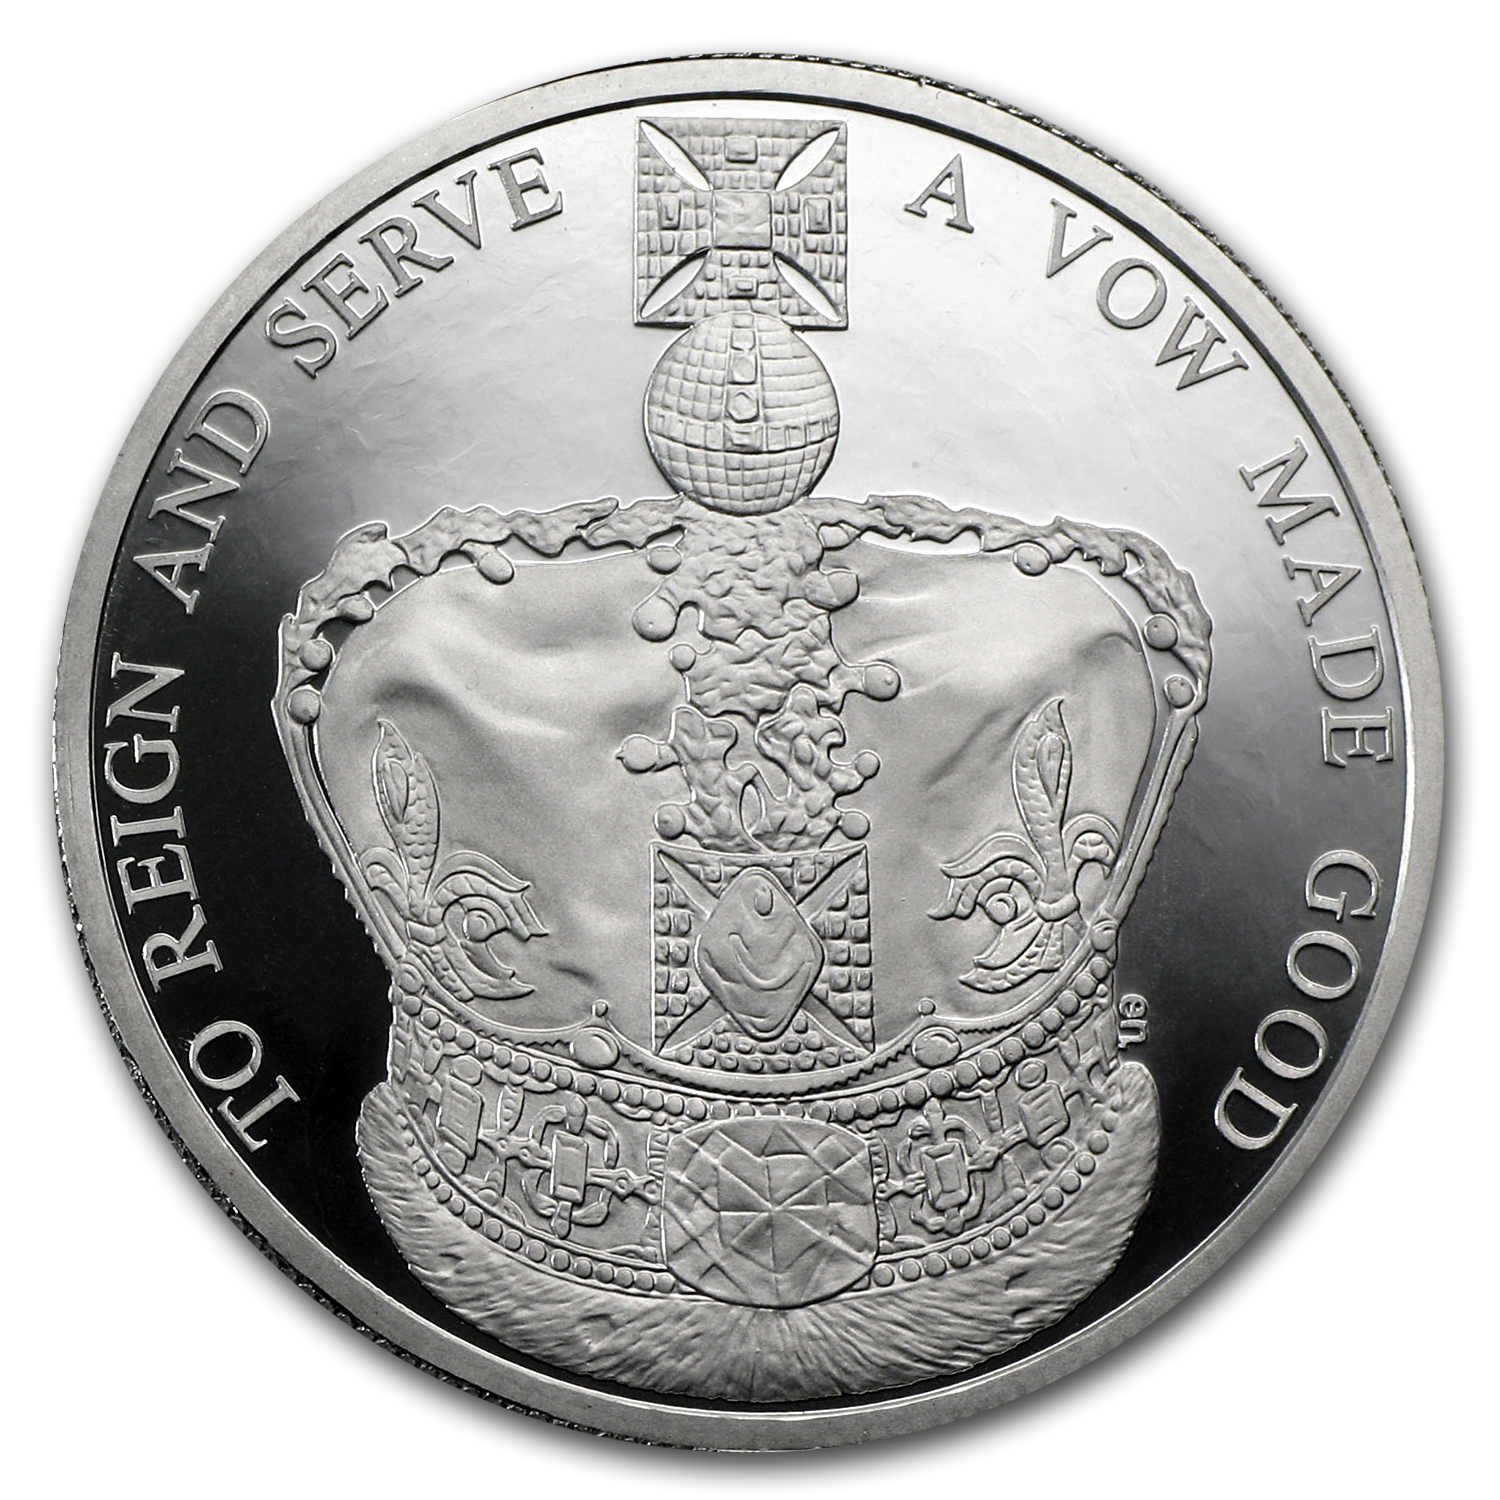 2013 Grt Britain Platinum £5 Piedfort (Queen's Coronation Anniv)